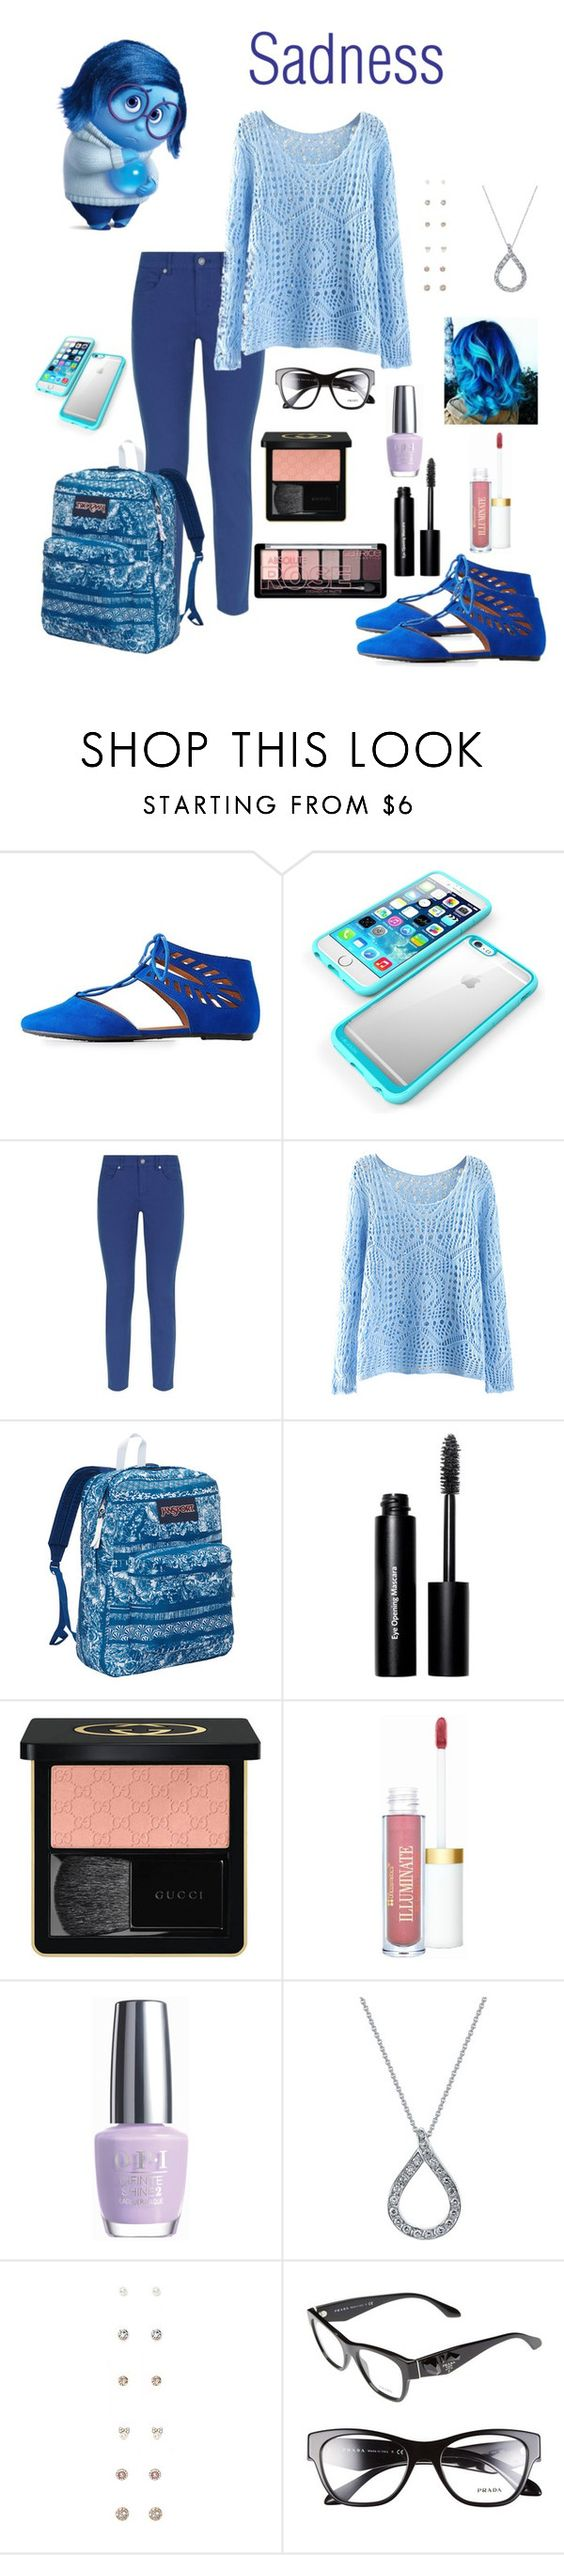 """""""School Outfit : Sadness"""" by dawndreader ❤ liked on Polyvore featuring Bamboo, Escada Sport, JanSport, Bobbi Brown Cosmetics, Gucci, OPI, Harry Kotlar, Forever 21 and Prada"""